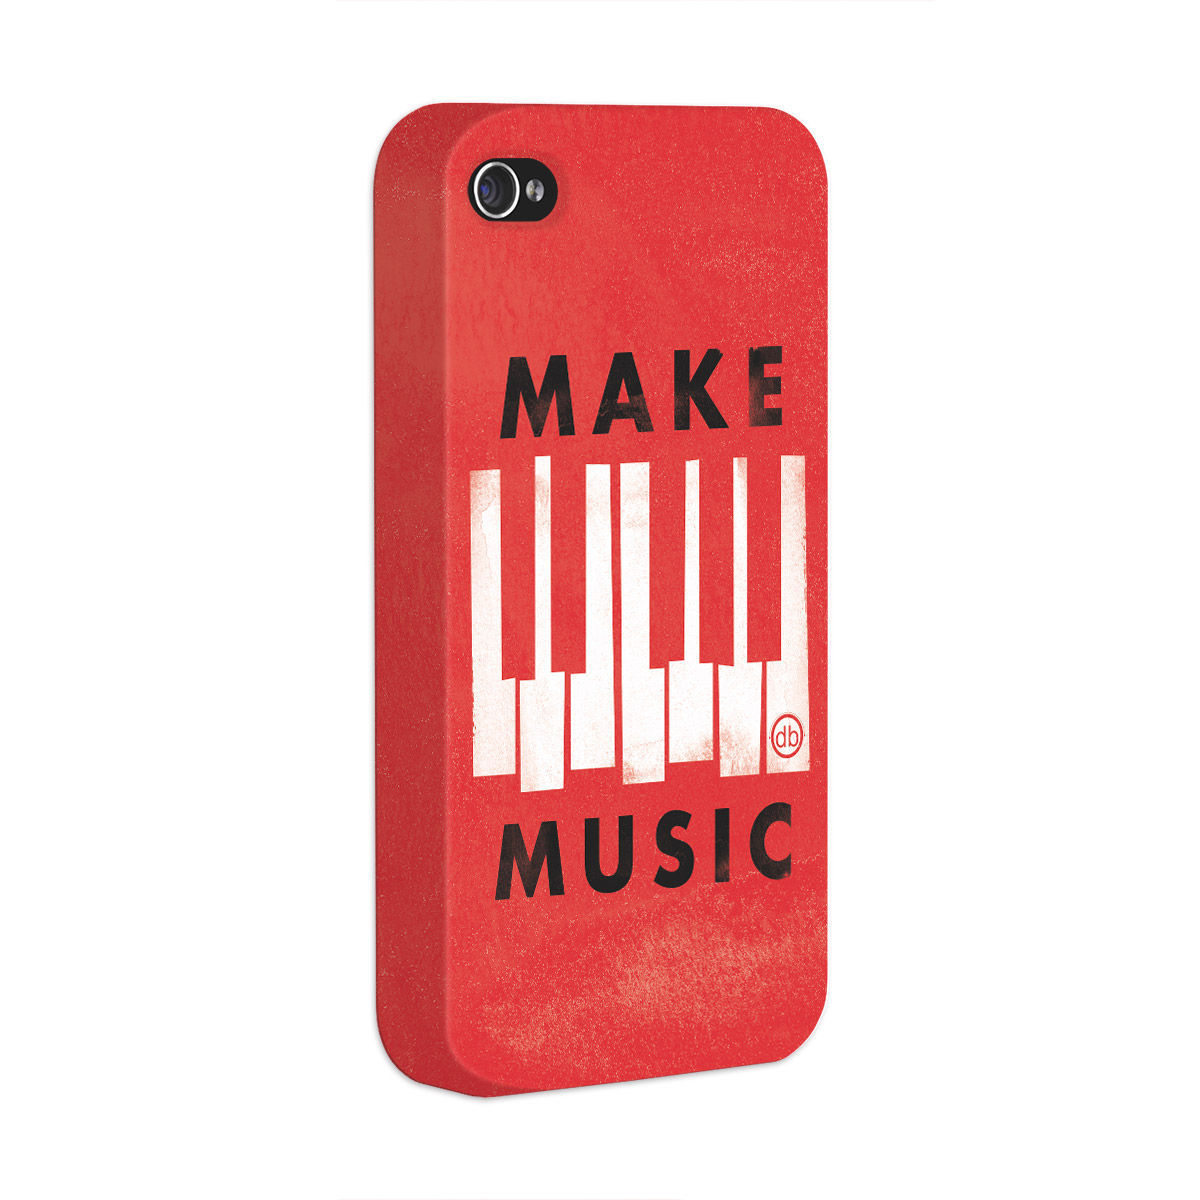 Capa para iPhone 4/4S Dudu Borges Make Music